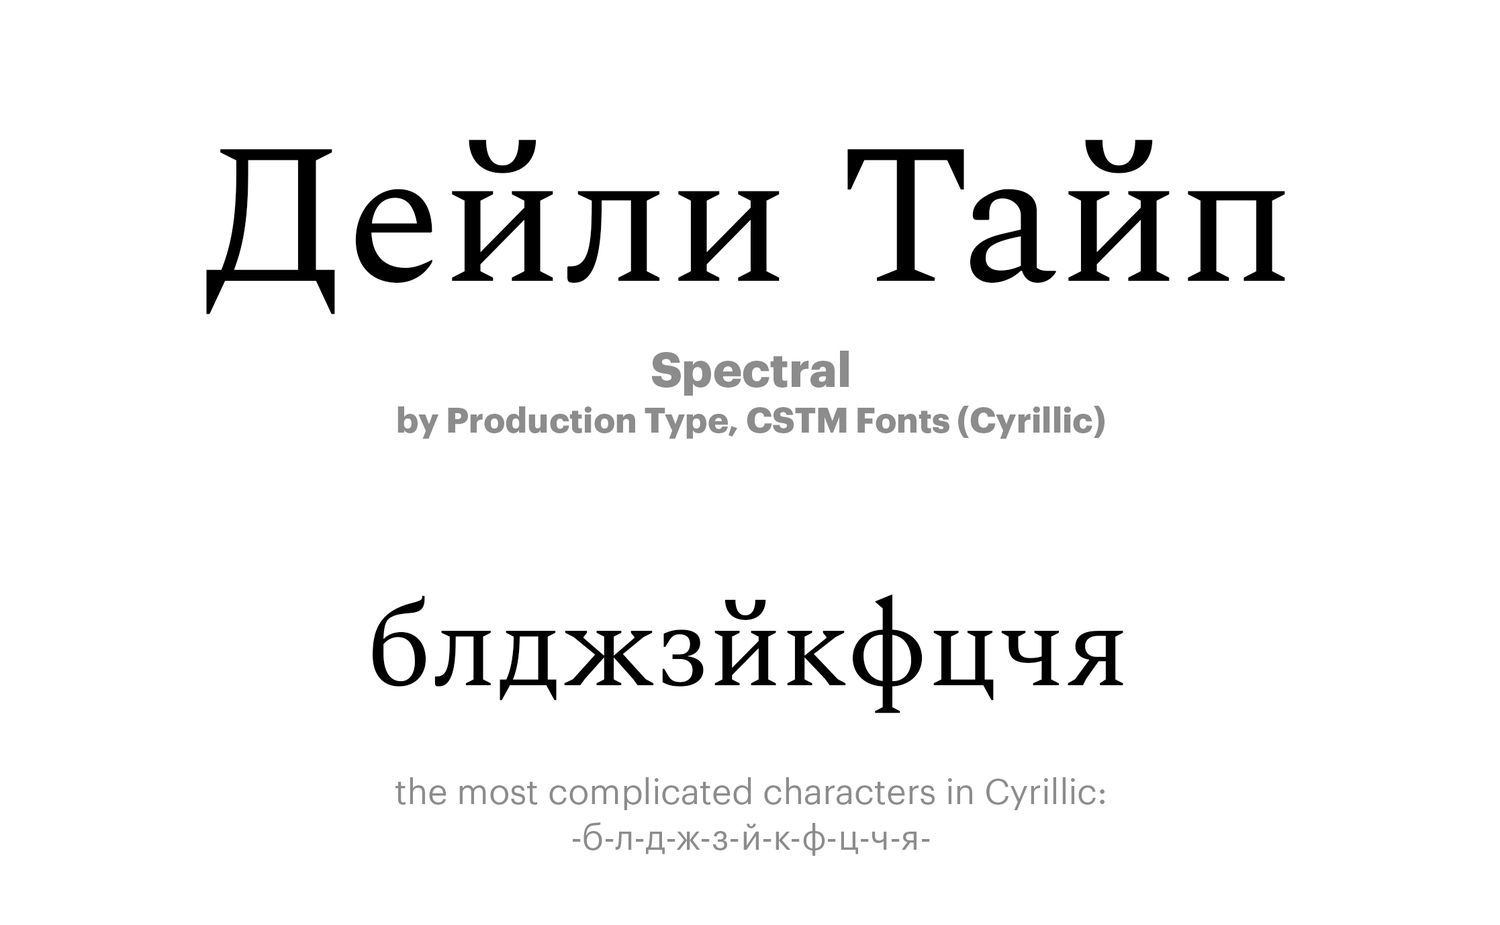 Spectral-by-Production-Type,-CSTM-Fonts-(Cyrillic)